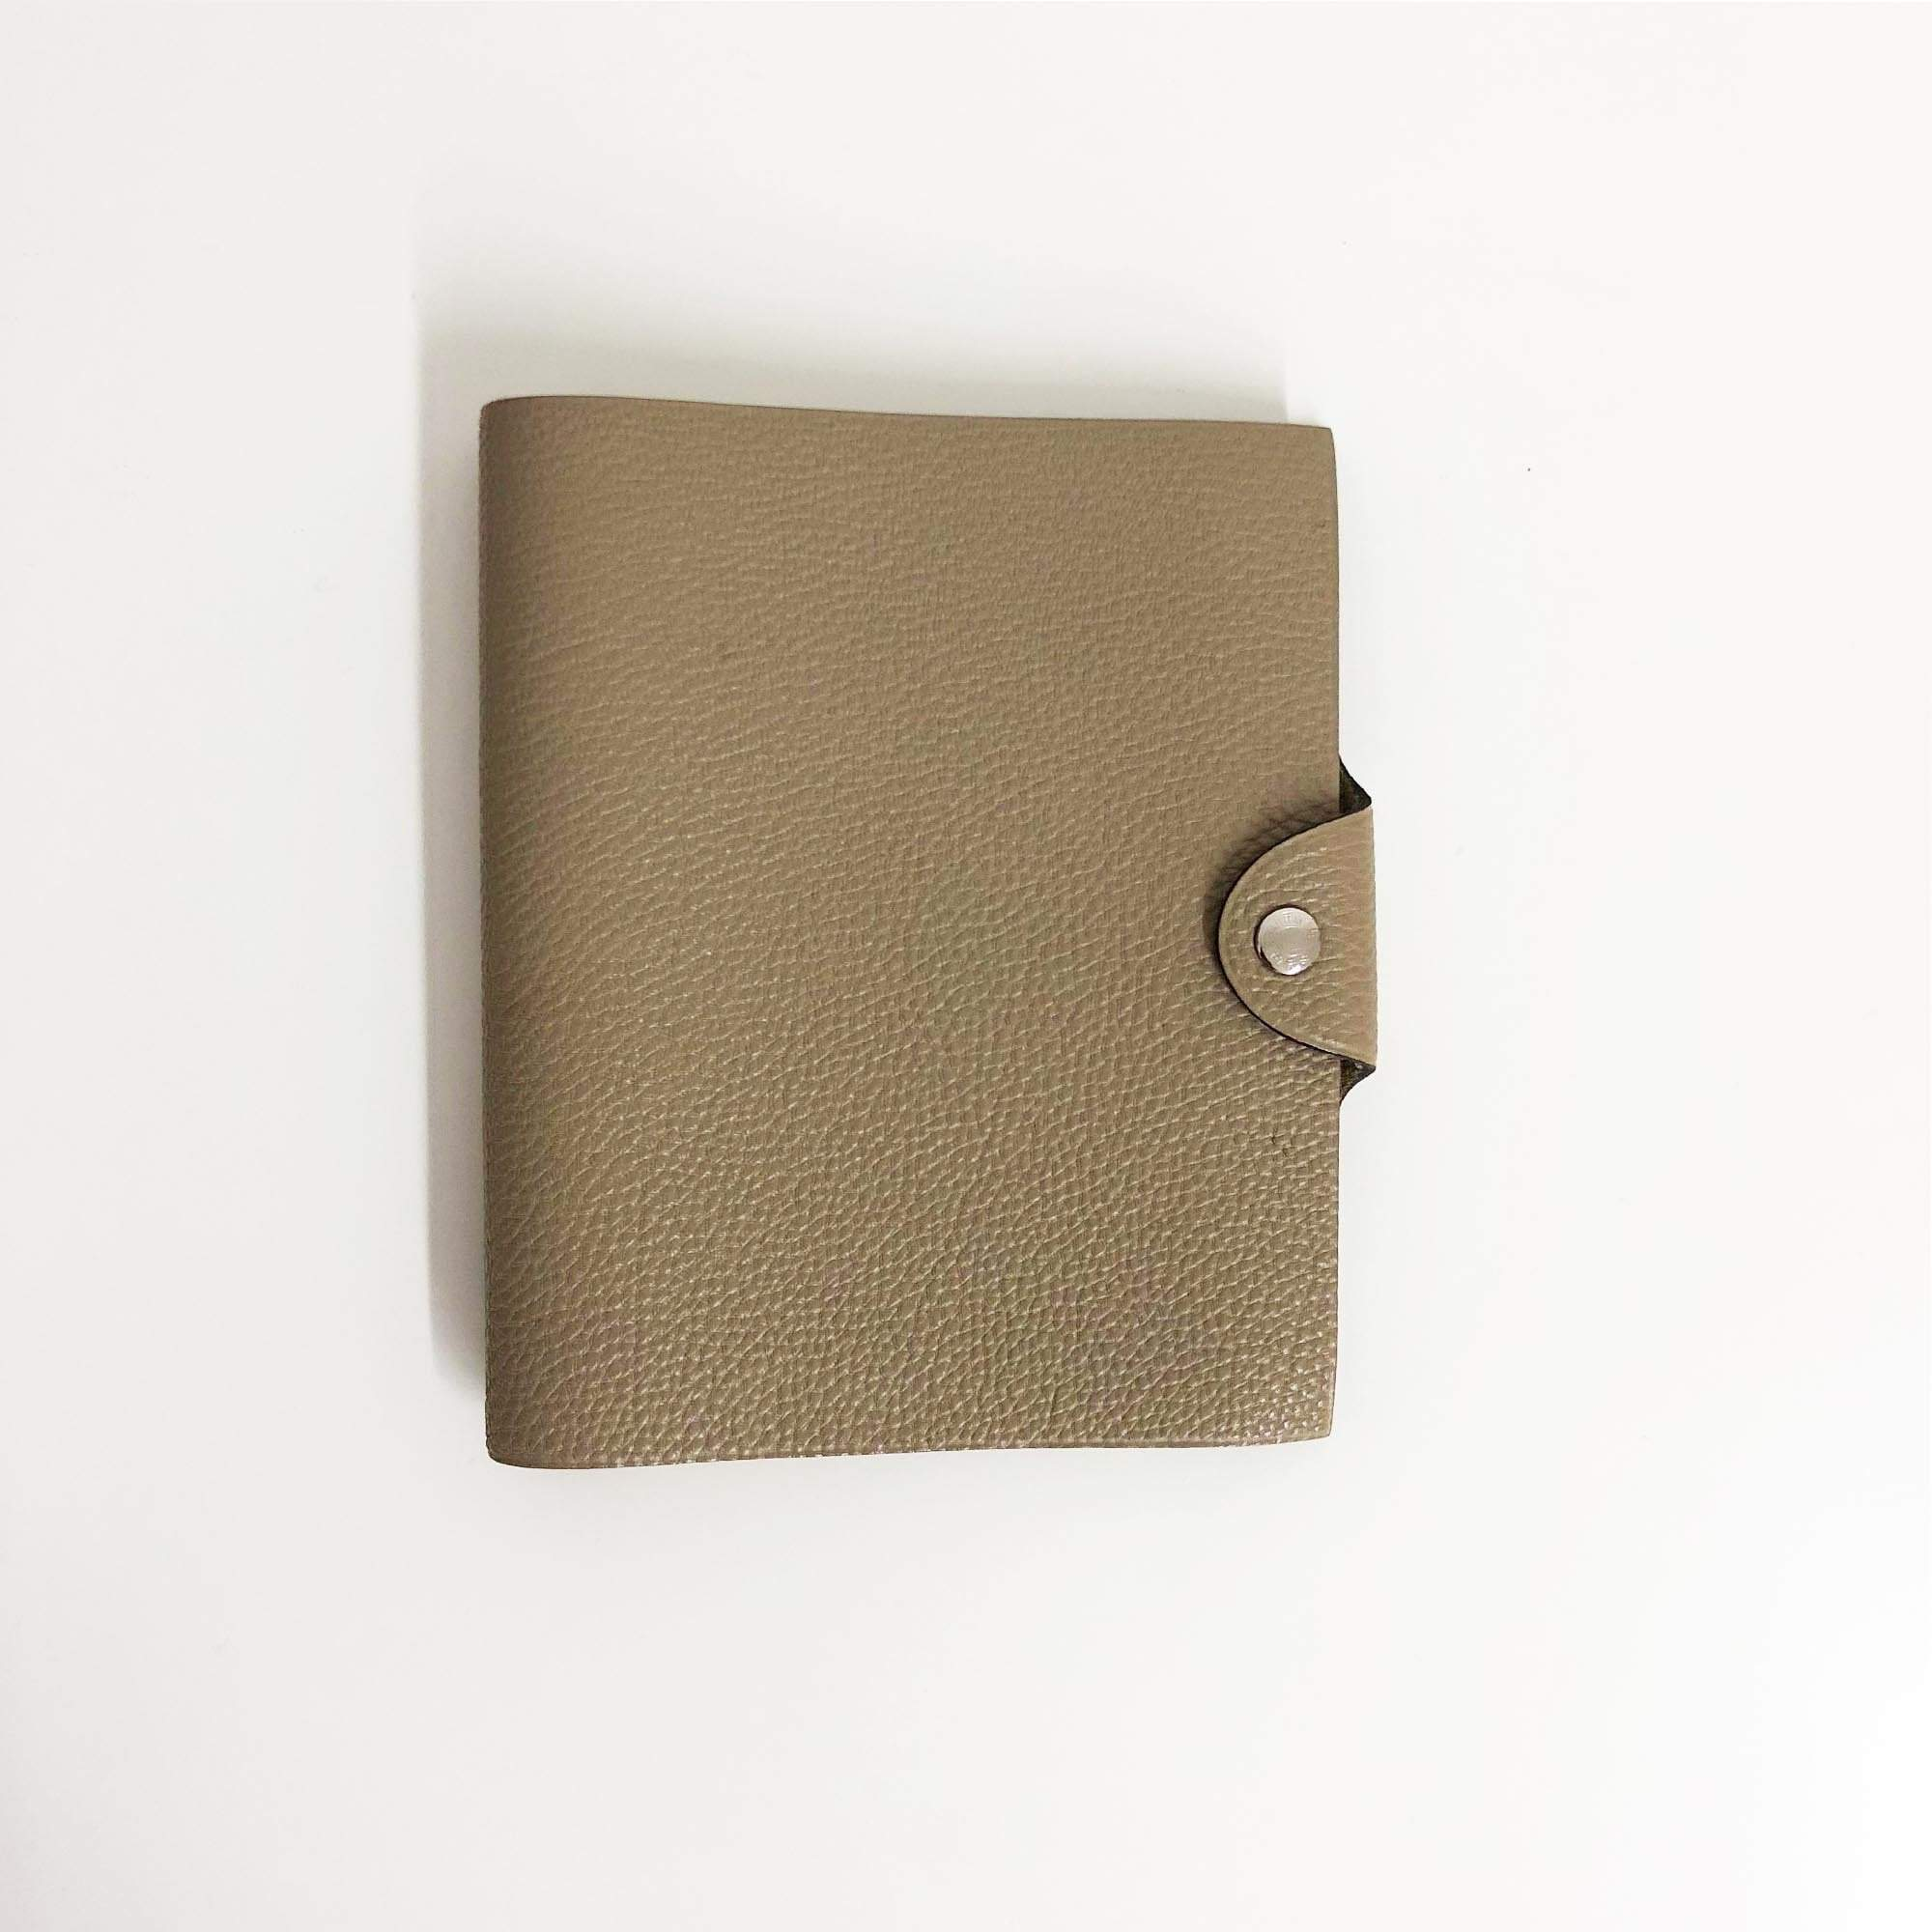 Garderobe Taupe Hermes Ulysse Notebook Cover Taupe Pm Garderobe